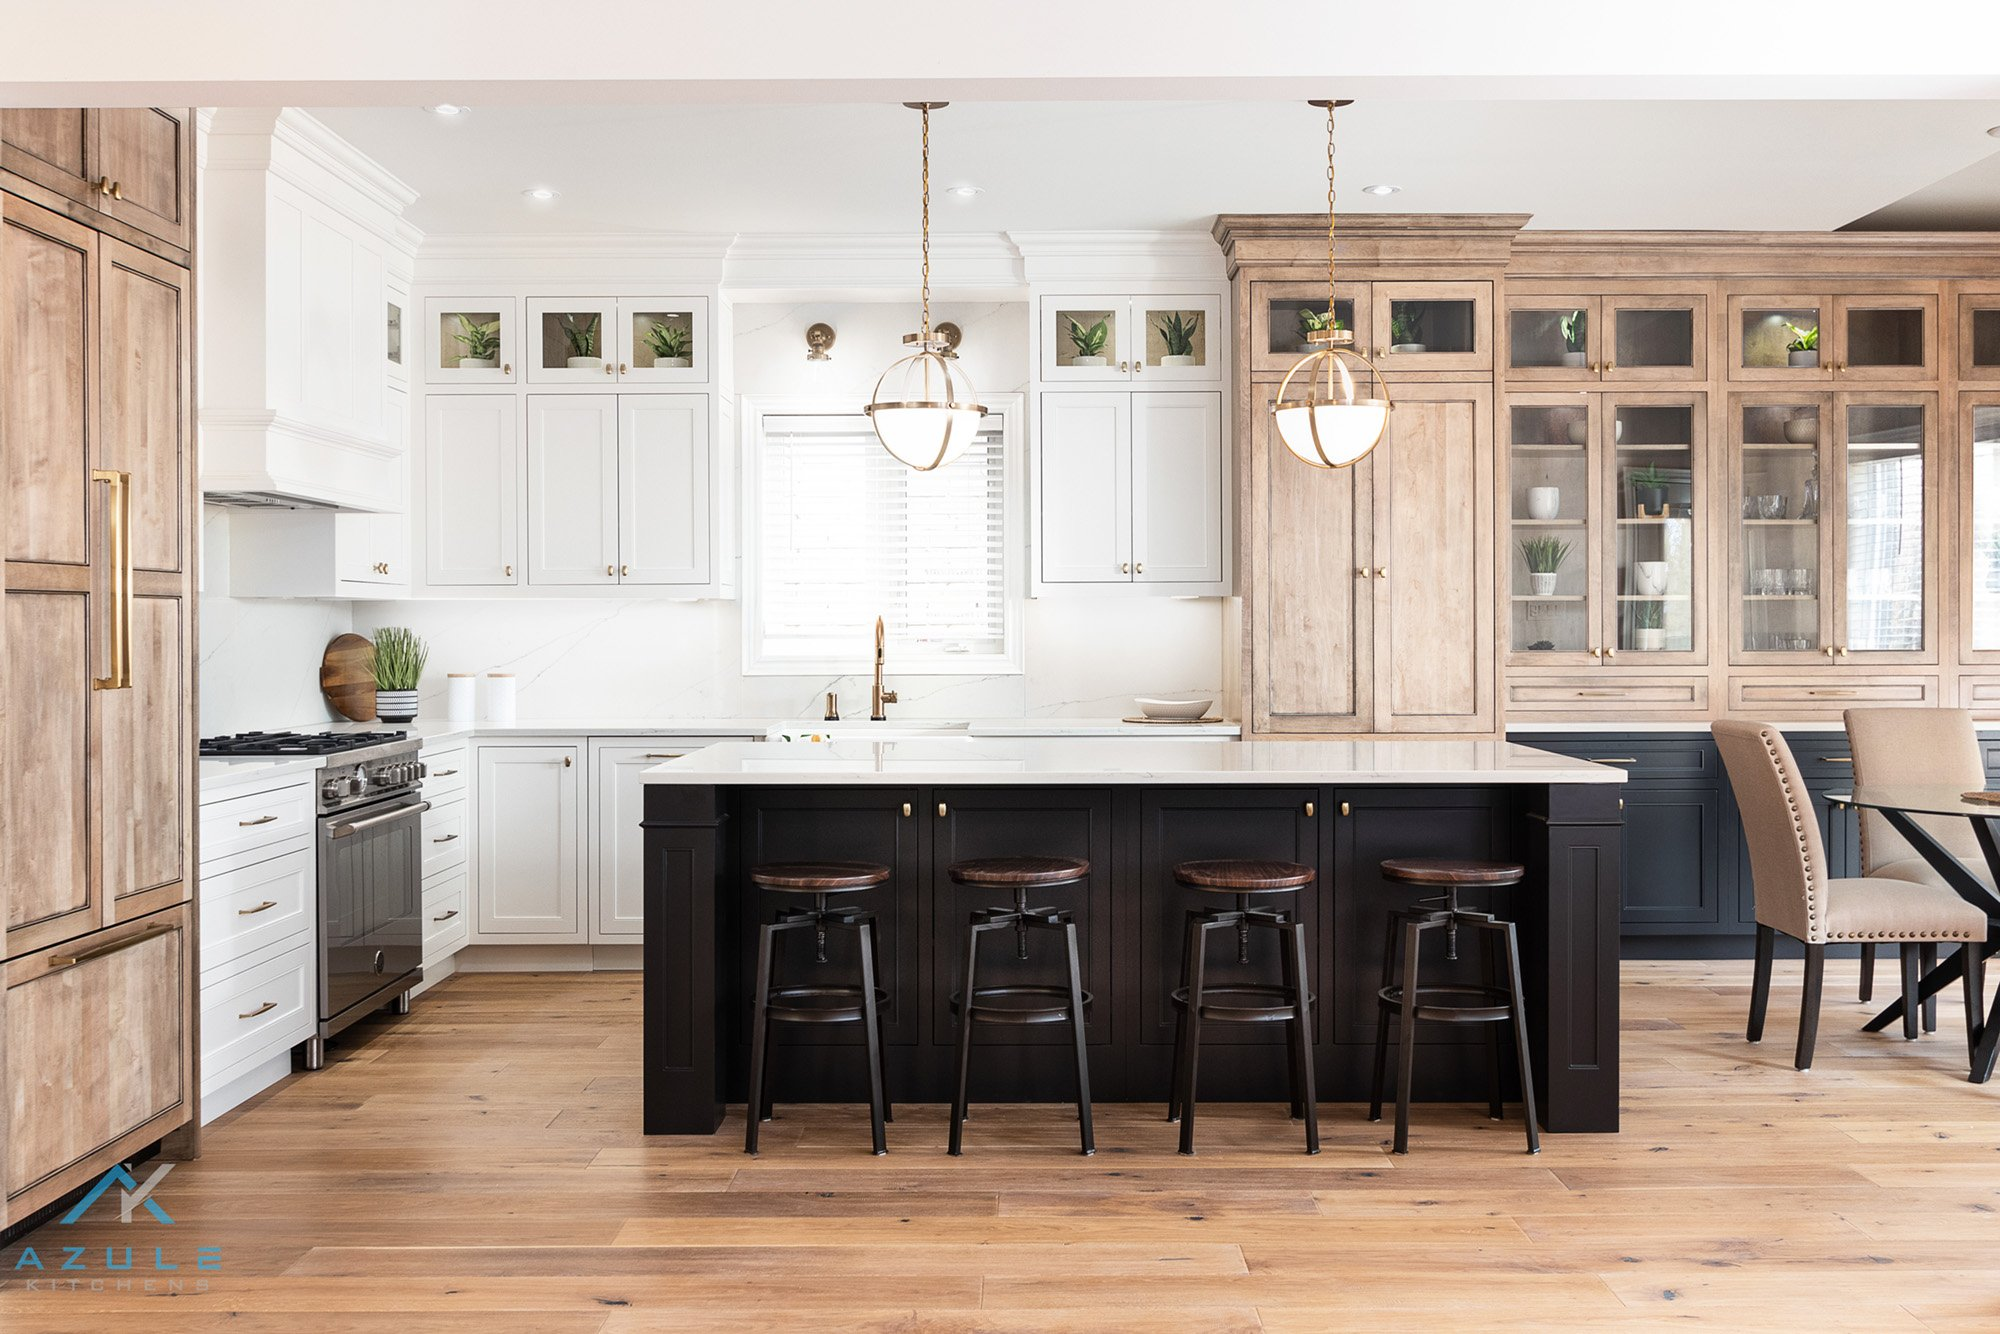 Best kitchen cabinetry award